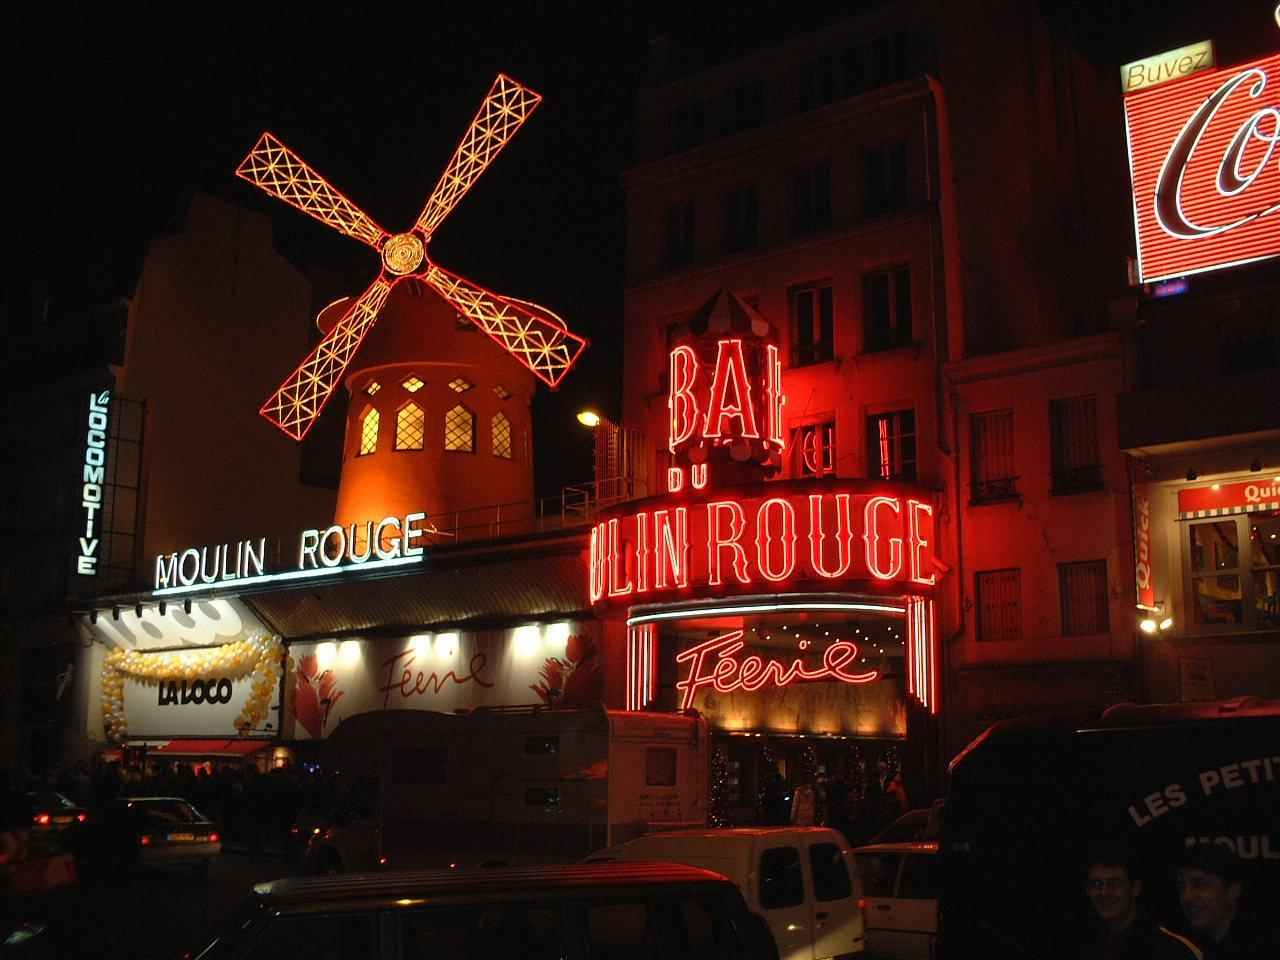 MOULIN ROUGE! - Simple English Wikipedia, the free encyclopedia